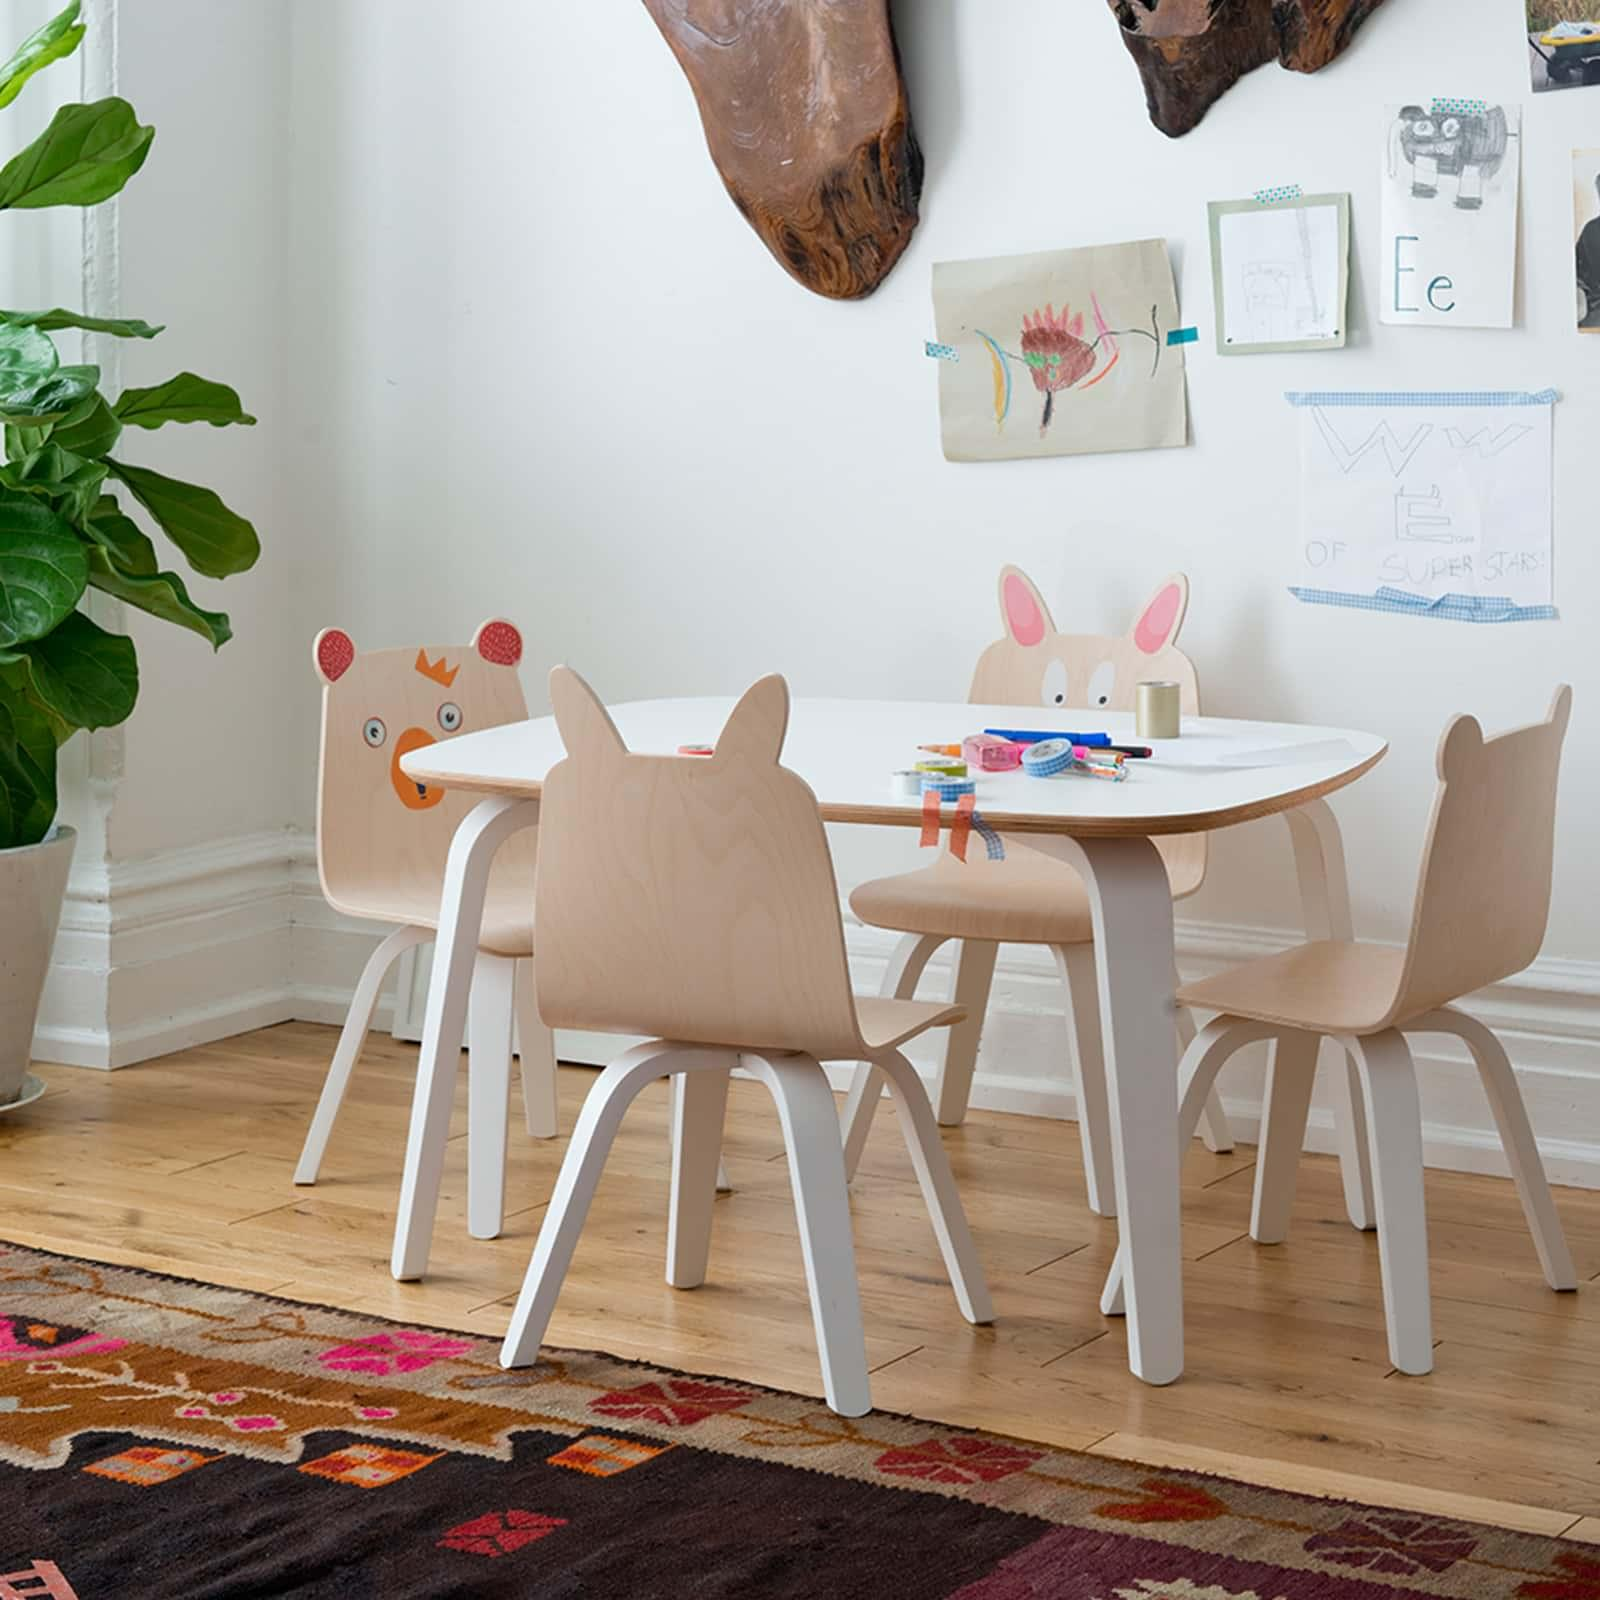 SET OF 2 Bear Play Chair - Walnut / White